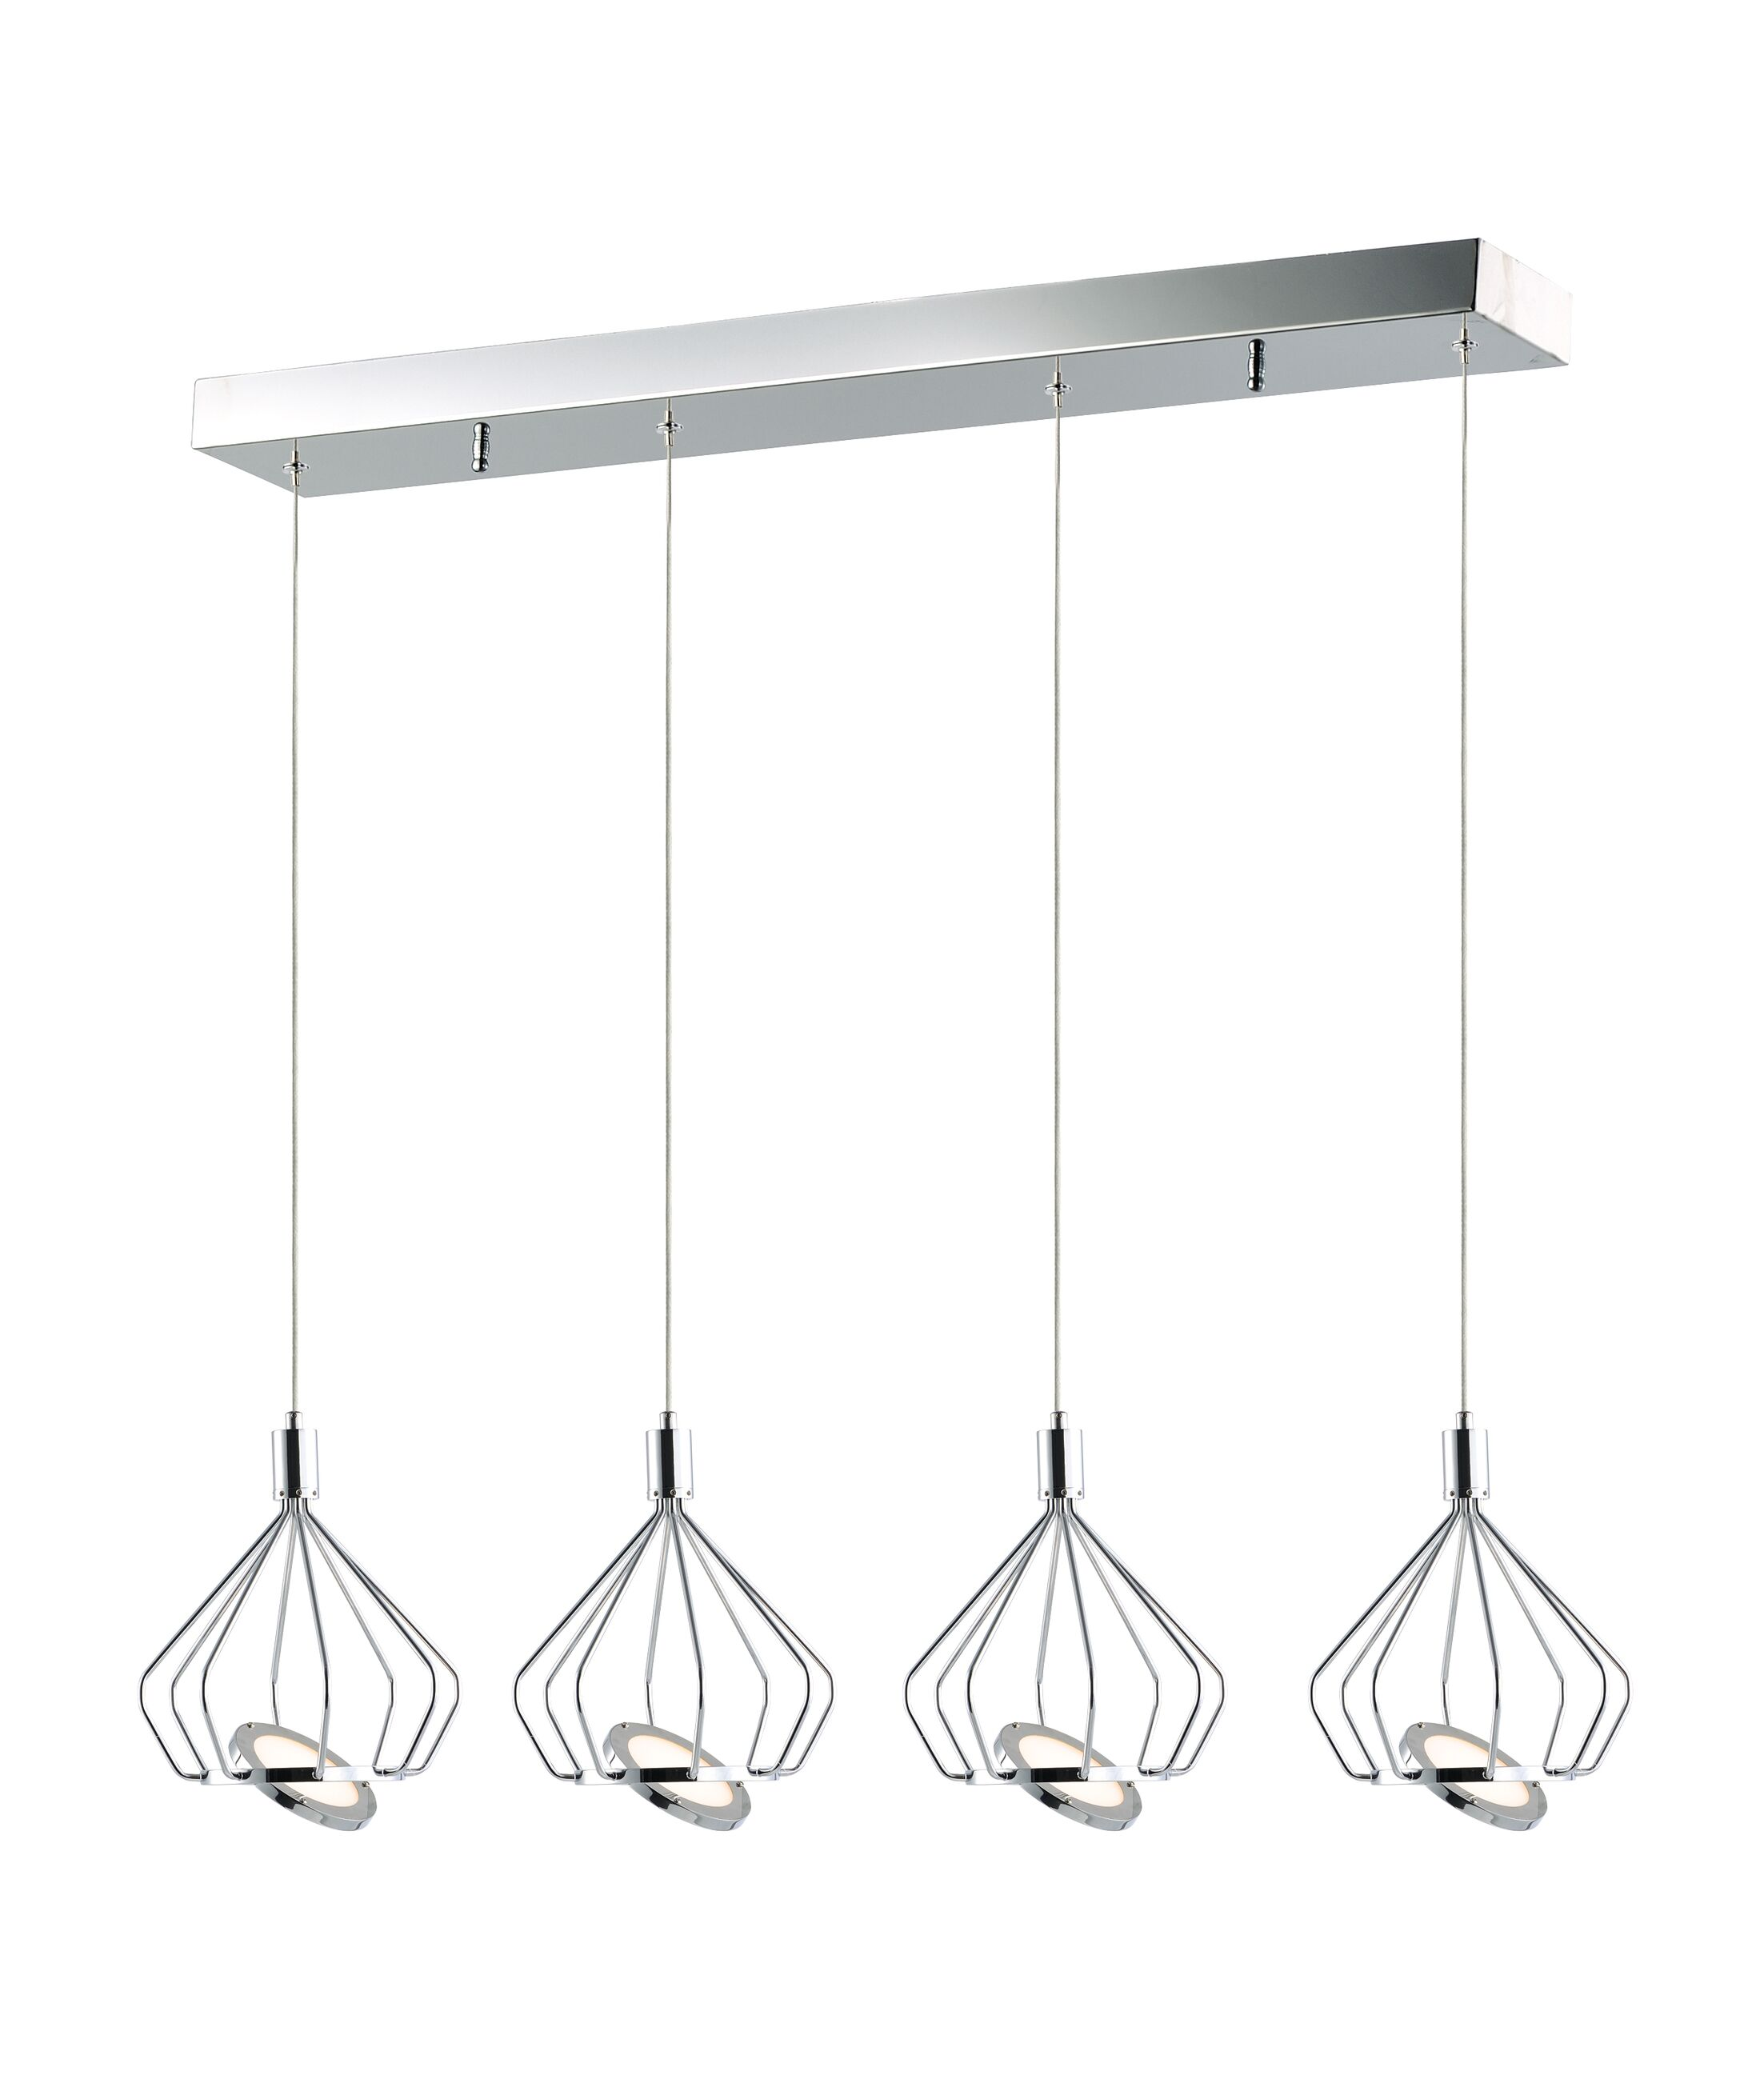 Eckman 4-Light LED Kitchen Island Pendant